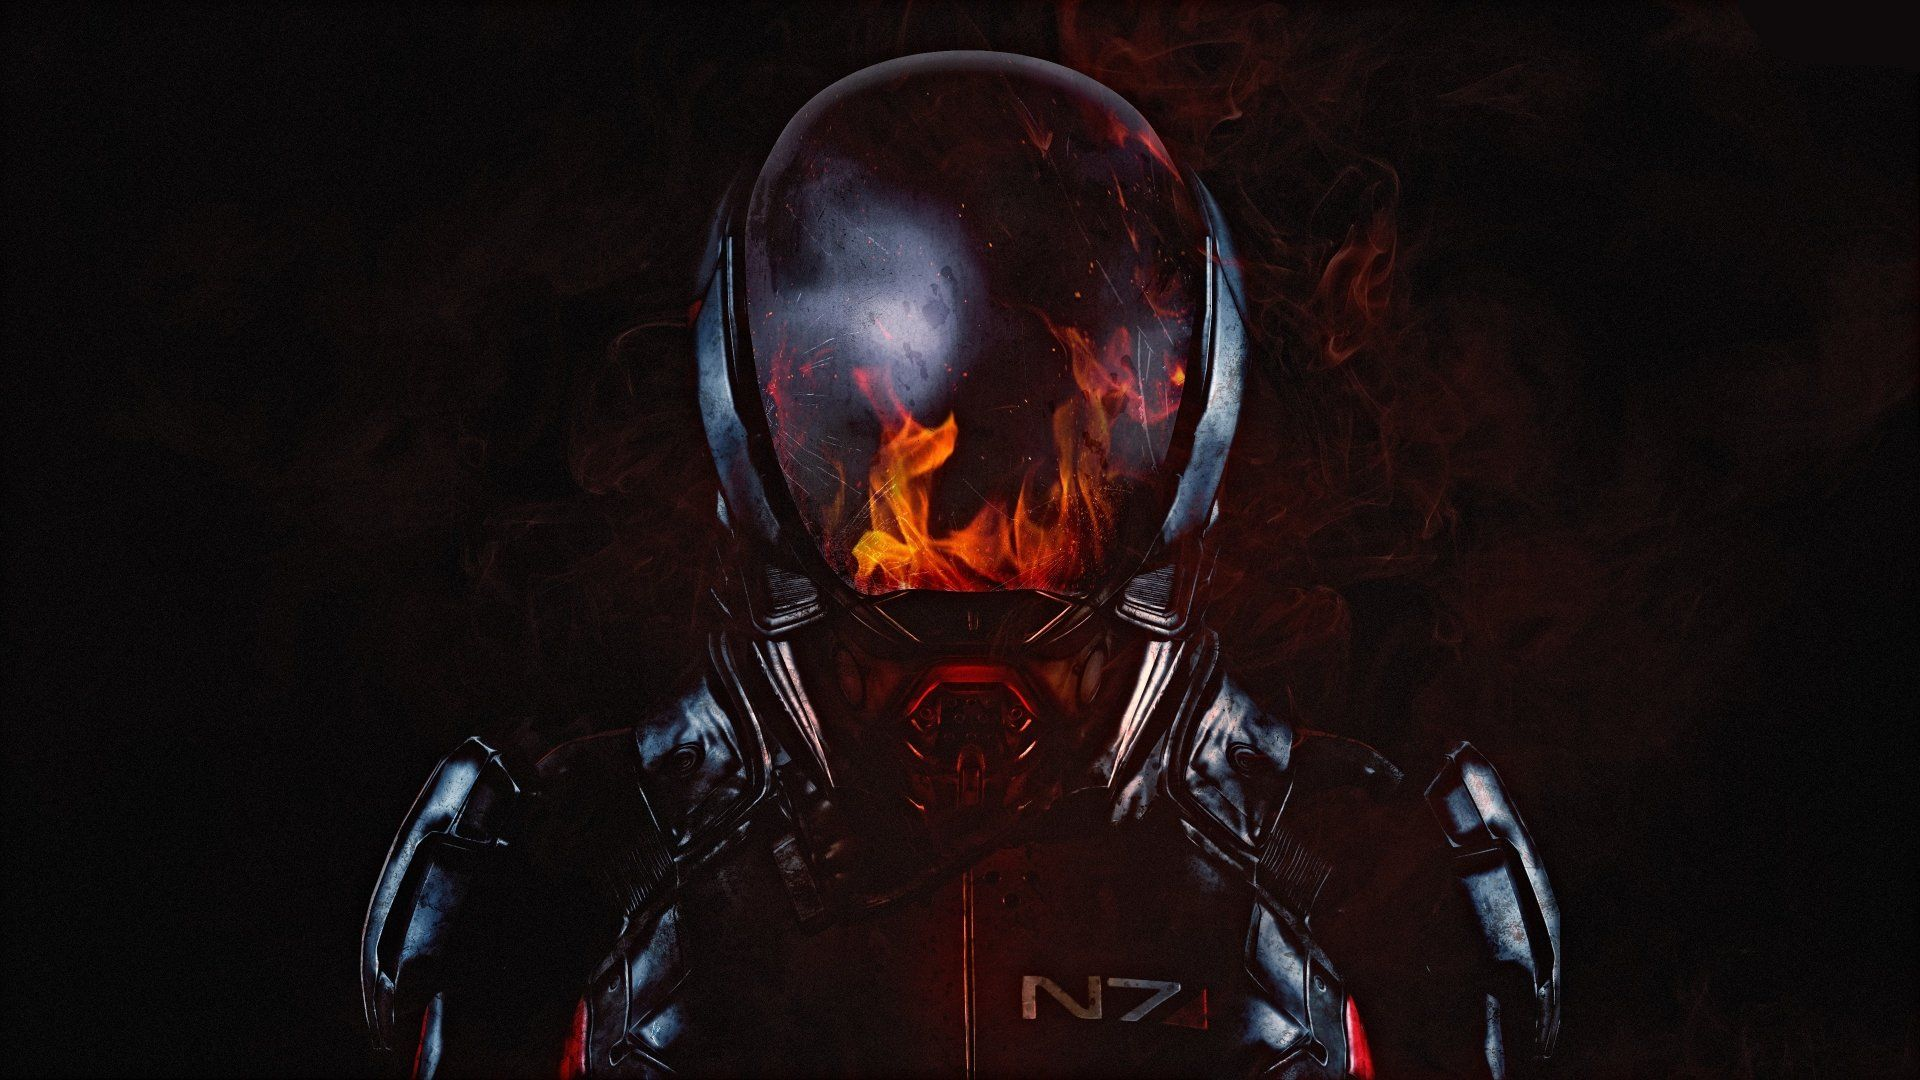 3840x2160 Mass Effect Andromeda Wallpaper Background Image View Download Comment And Rate Wallpaper Abyss In 2020 Mass Effect Hd Wallpaper Mass Effect Universe